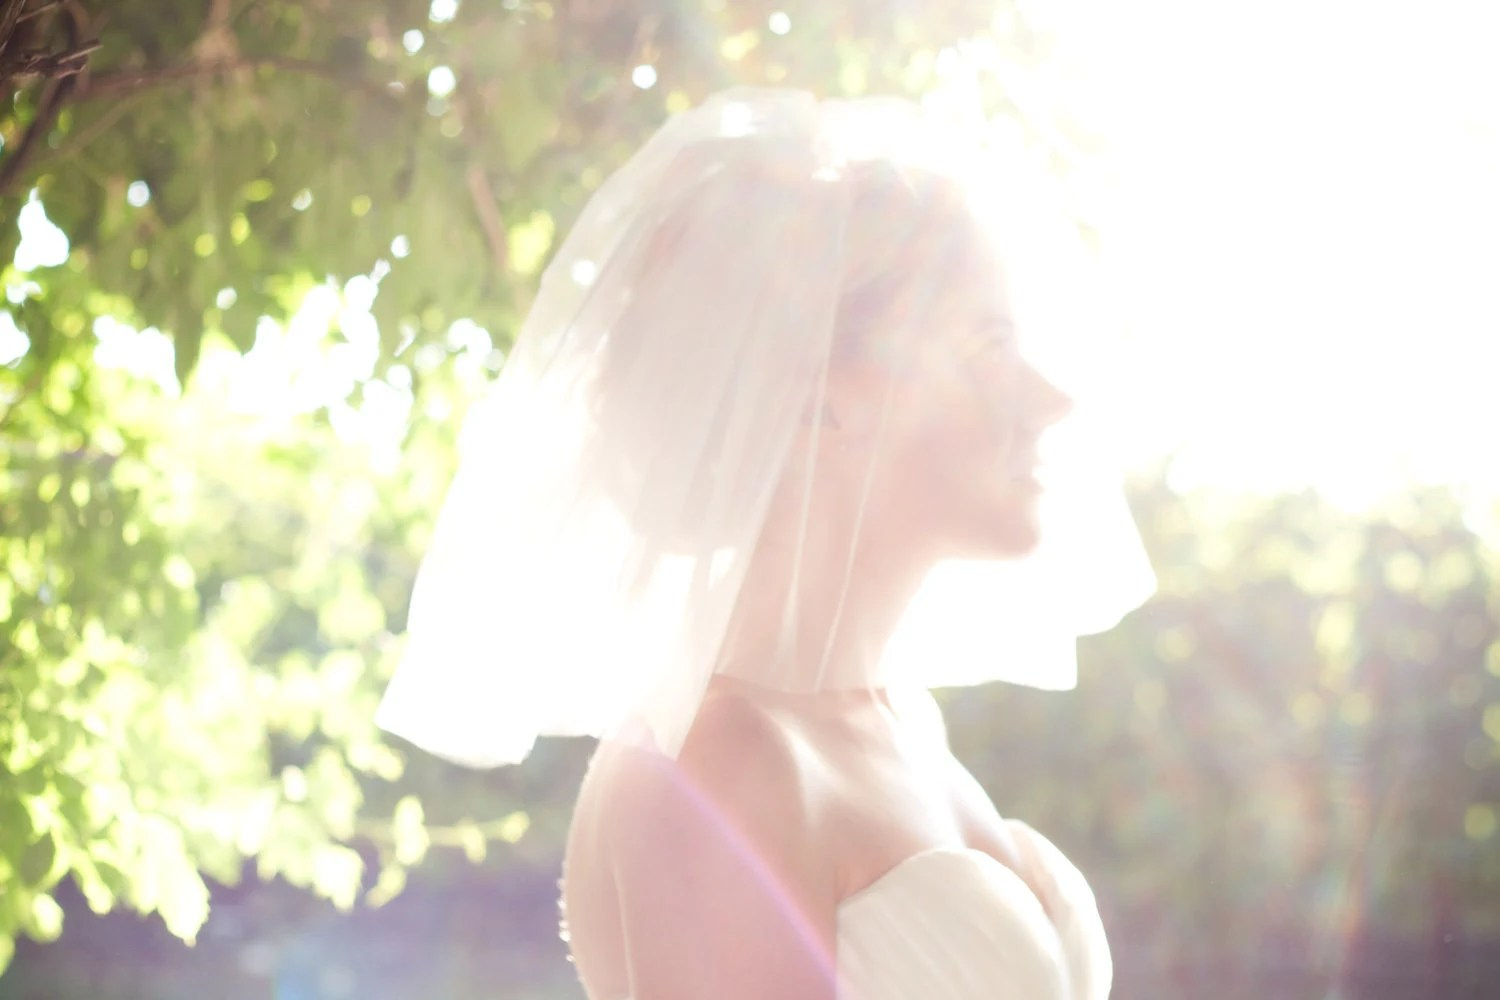 Wedding Veil - Short, Shoulder Length, 4 Layer Veil. Available in White, Diamond White, Pink and Ivory. The Prudy Veil - Made To Order.